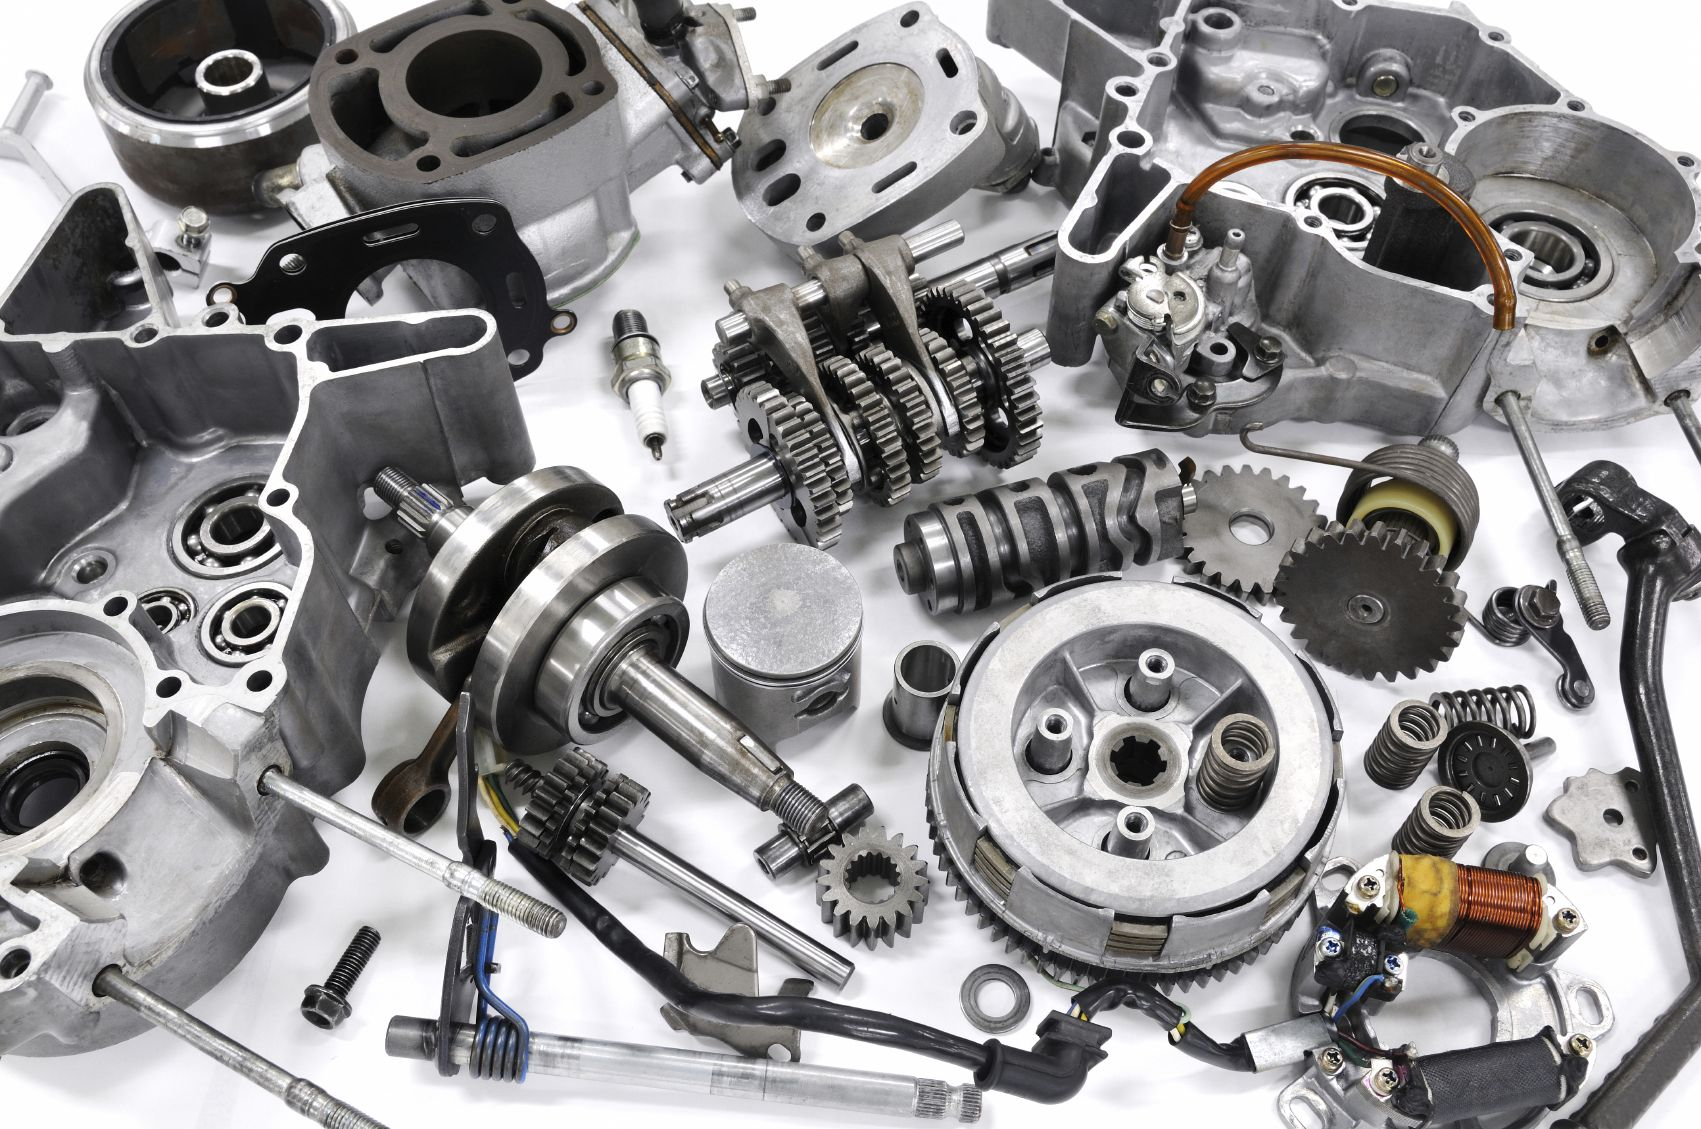 Buy the used and genuine car parts online uk www easycarparts com the easy car parts uk pinterest cars